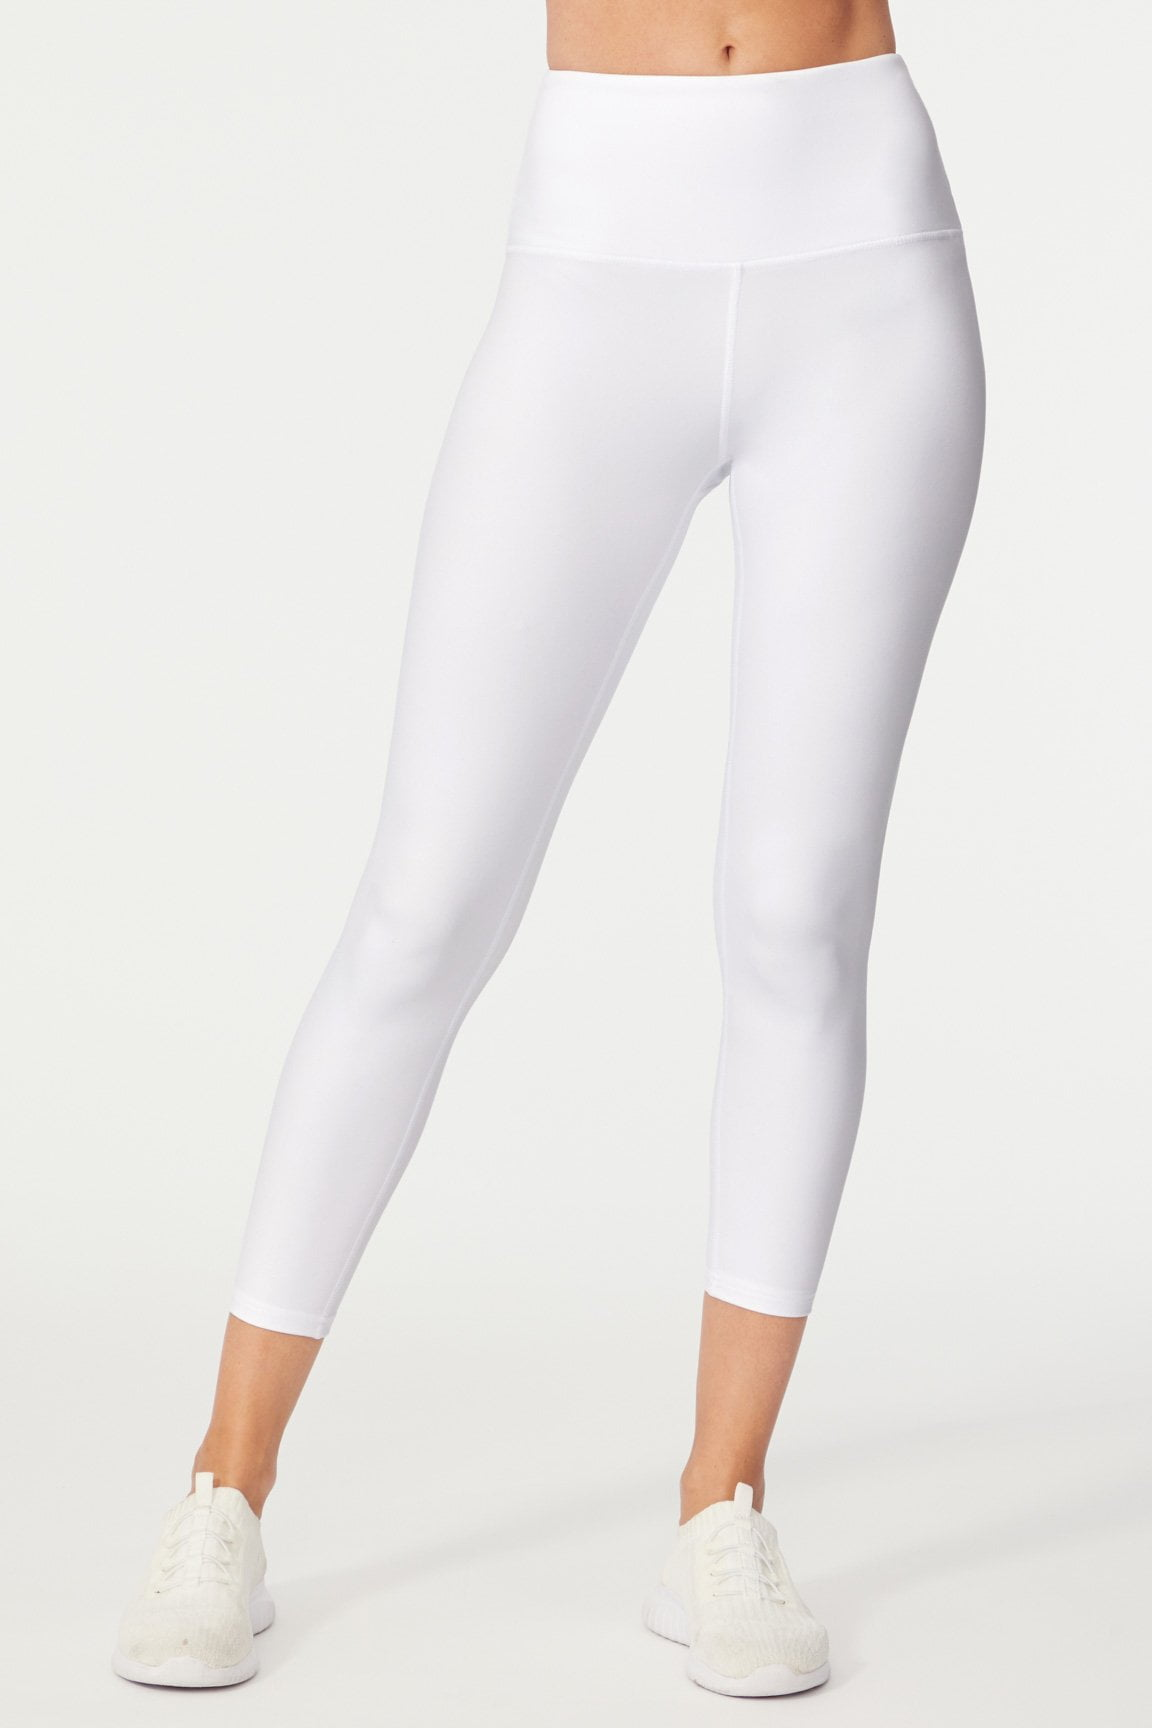 Endurance Legging (White)